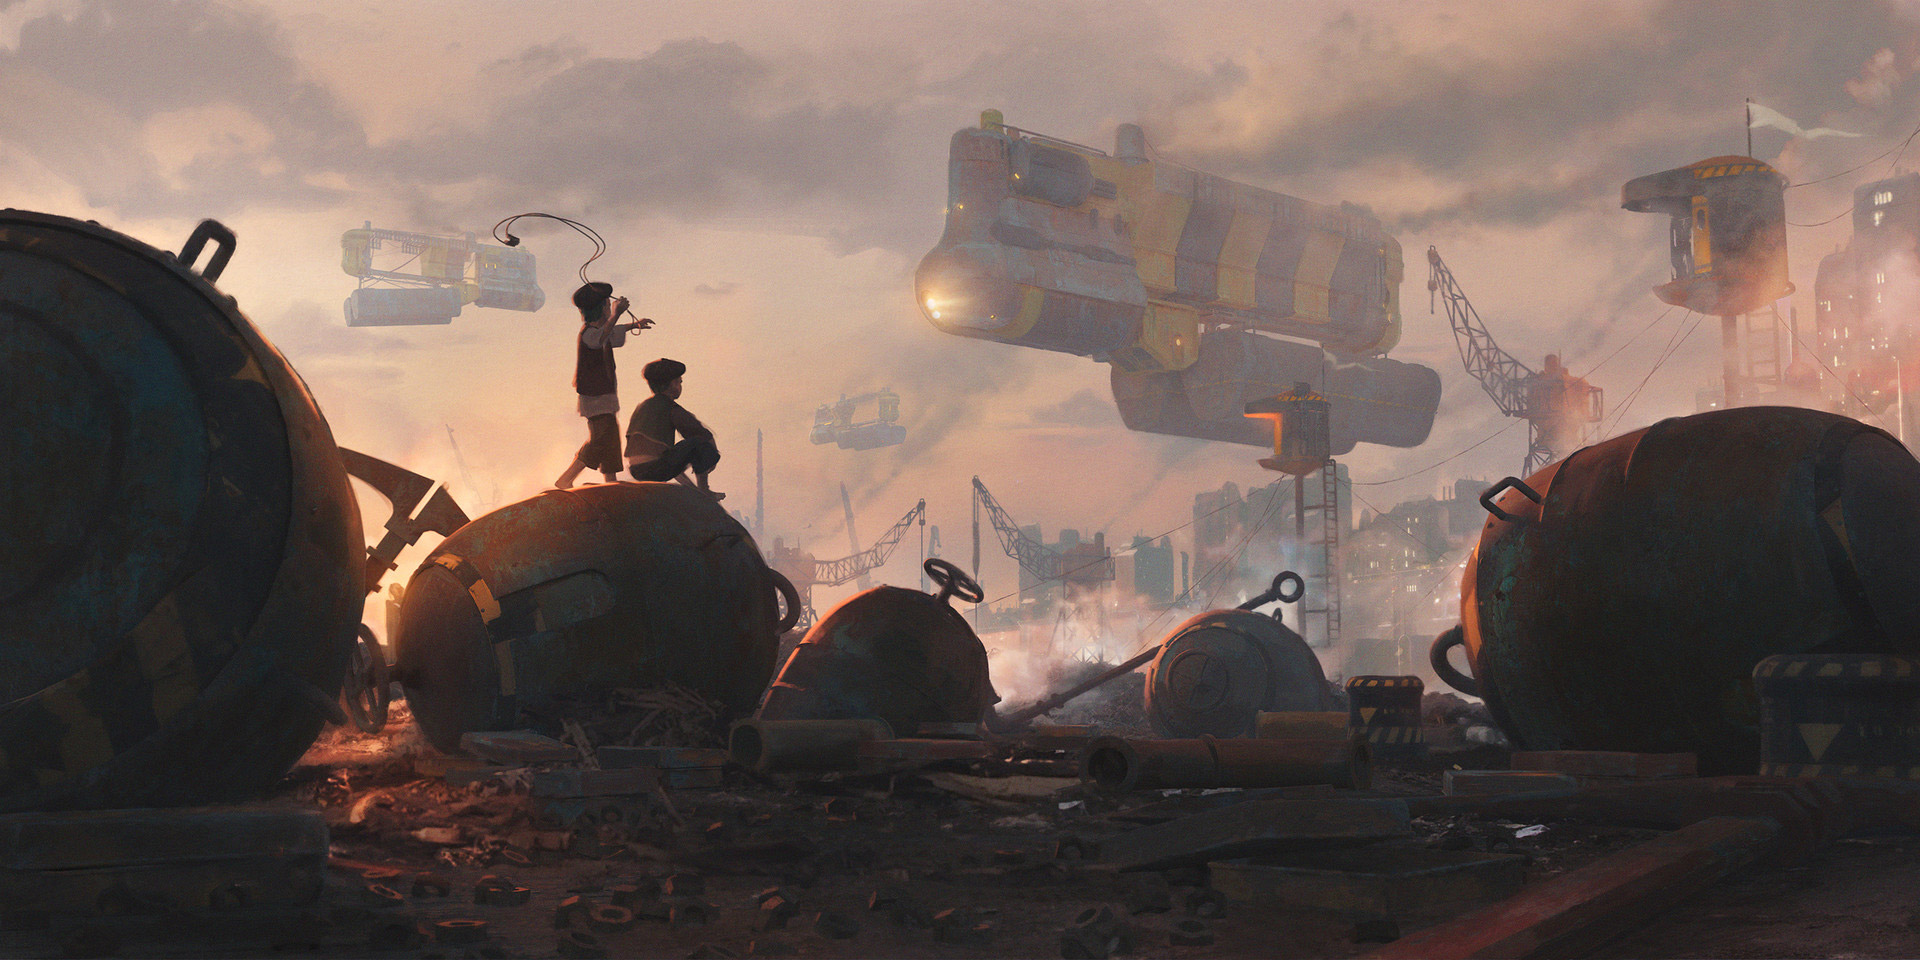 The Sci-Fi Concept Artworks of Rostyslav Zagornov